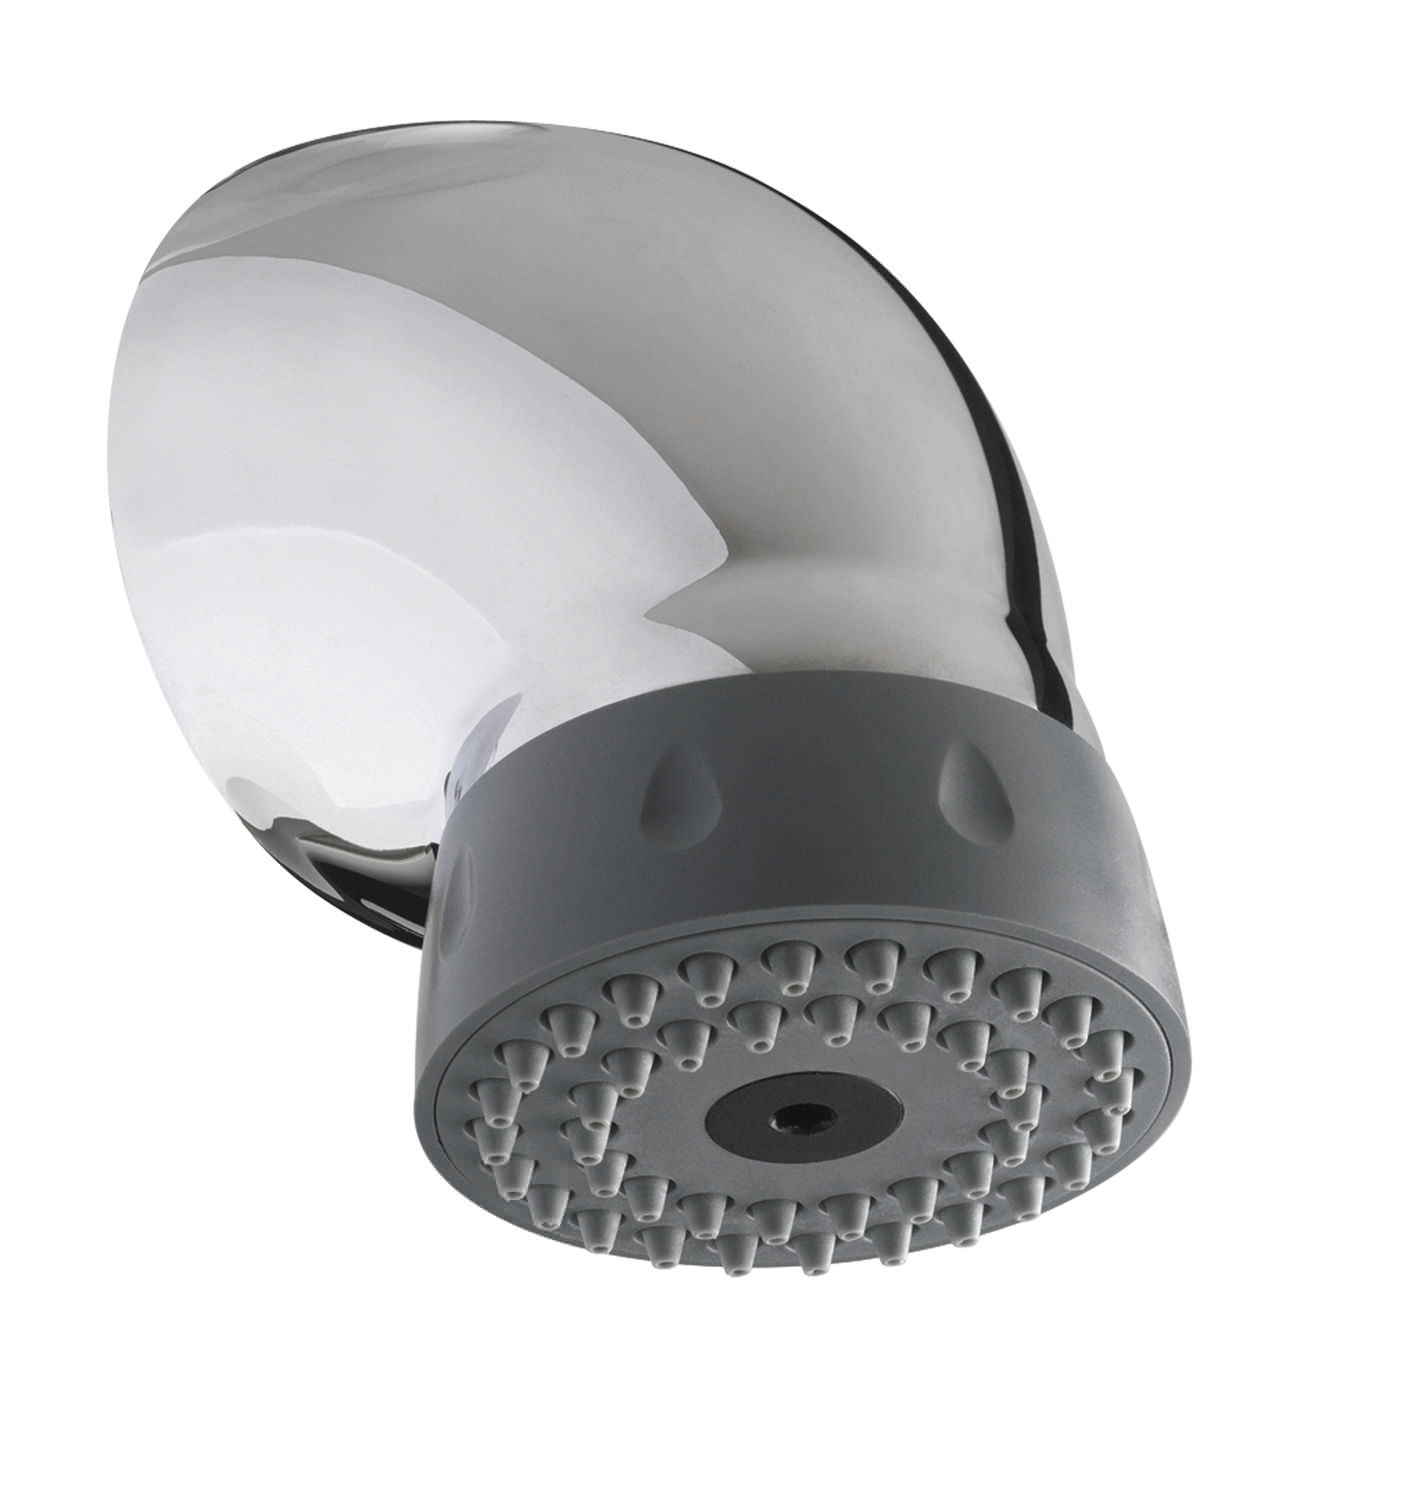 Wall-mounted shower head / round / commercial - 29255 - PRESTO